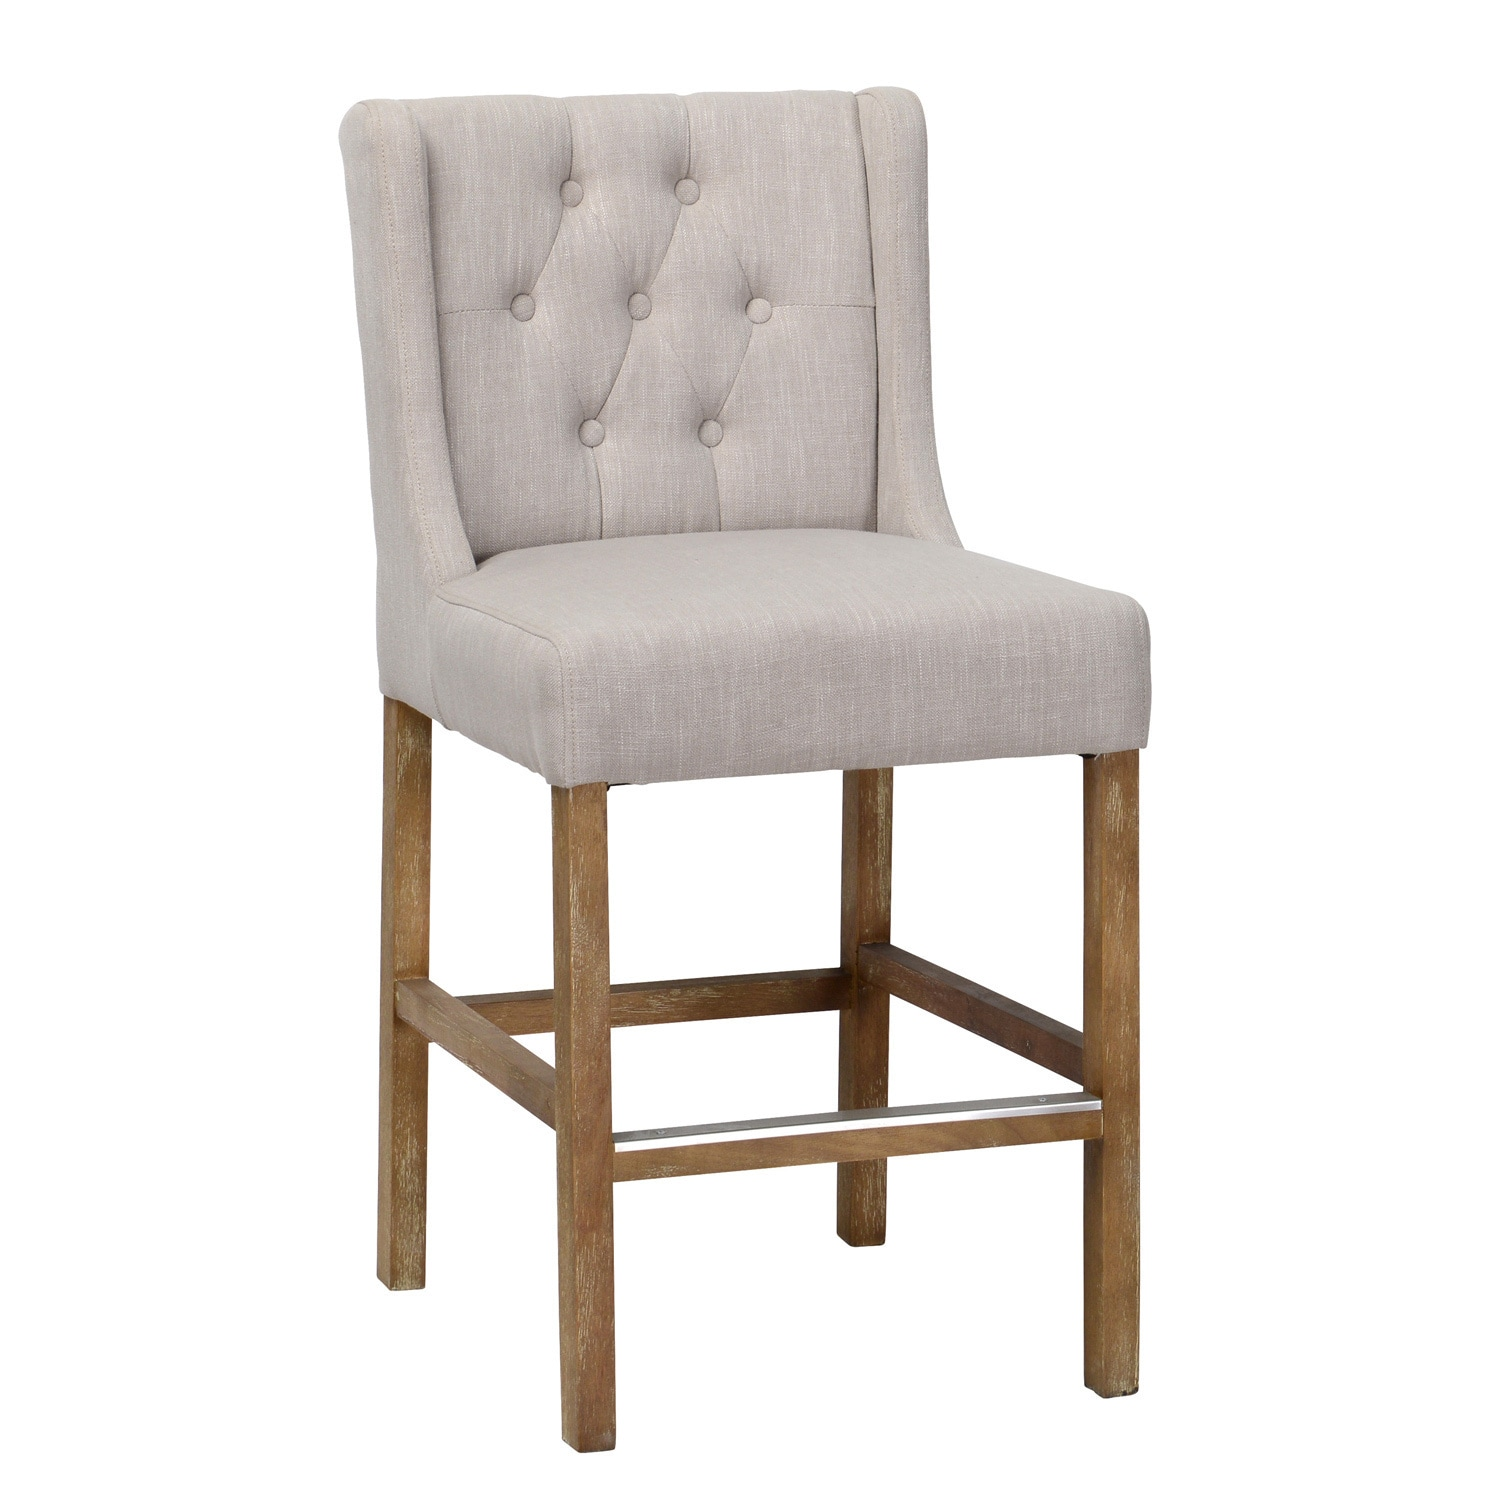 Gracewood Hollow Dostoyevsky Cream Tufted Upholstered 24